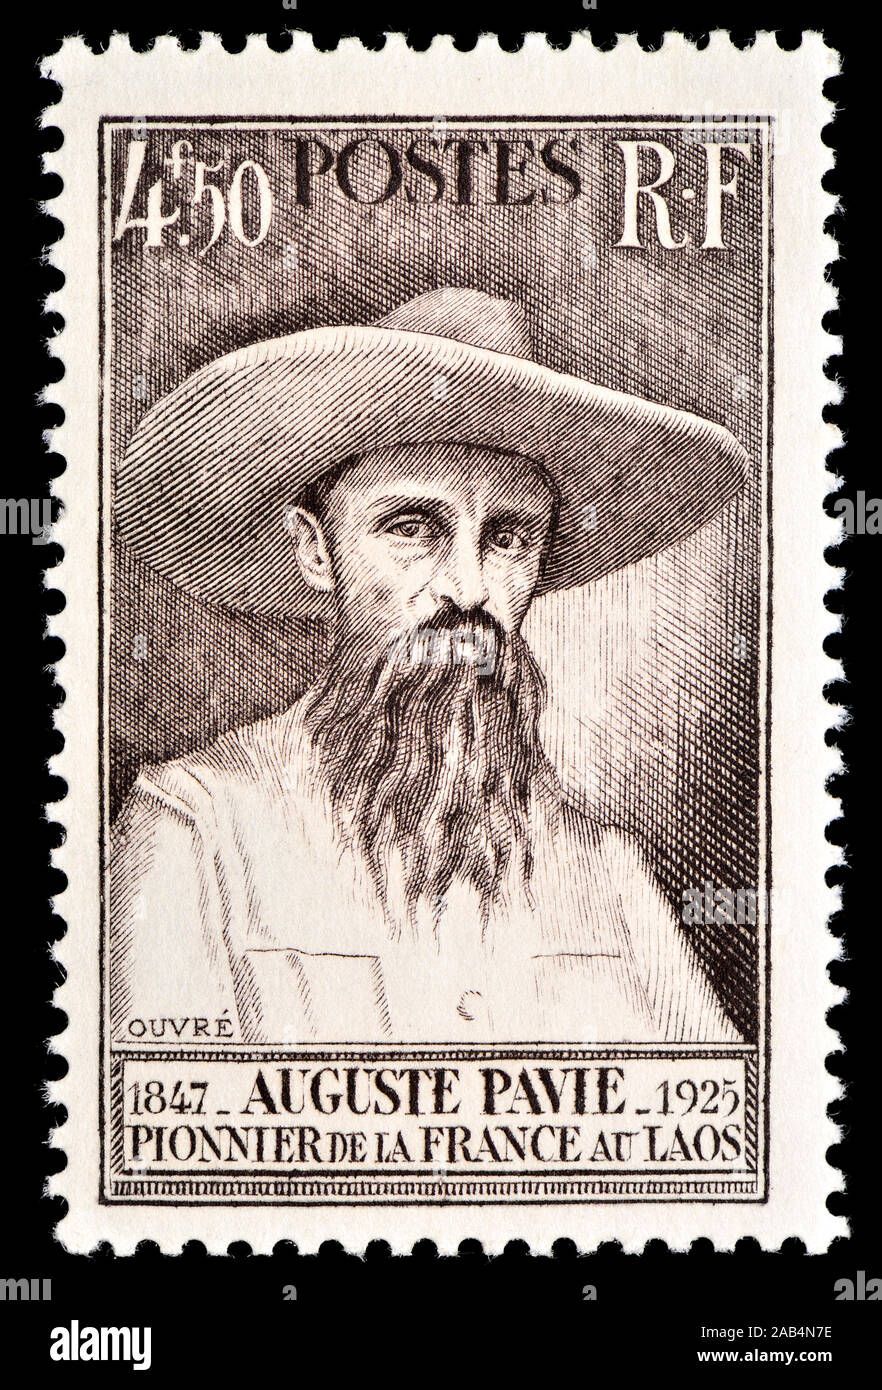 French postage stamp (1947) : Auguste Jean-Marie Pavie (1847 – 1925) French colonial civil servant, explorer and diplomat who was instrumental in esta Stock Photo